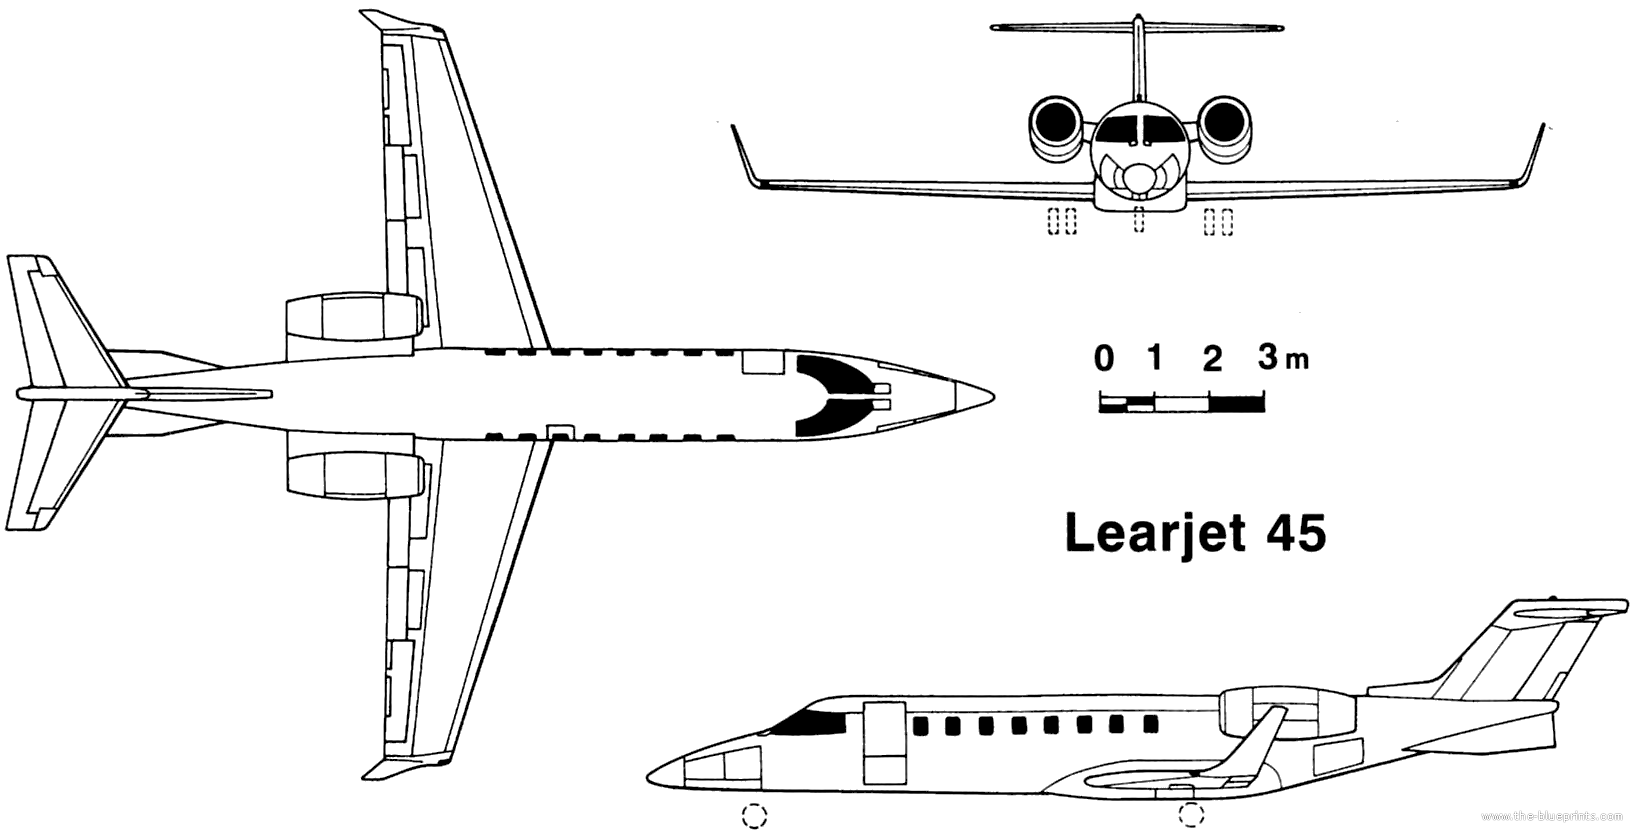 Learjet Drawing likewise Coloring Pages Airplanes Jets further L together with Sea ray 250 select ex together with 2101665. on learjet 23